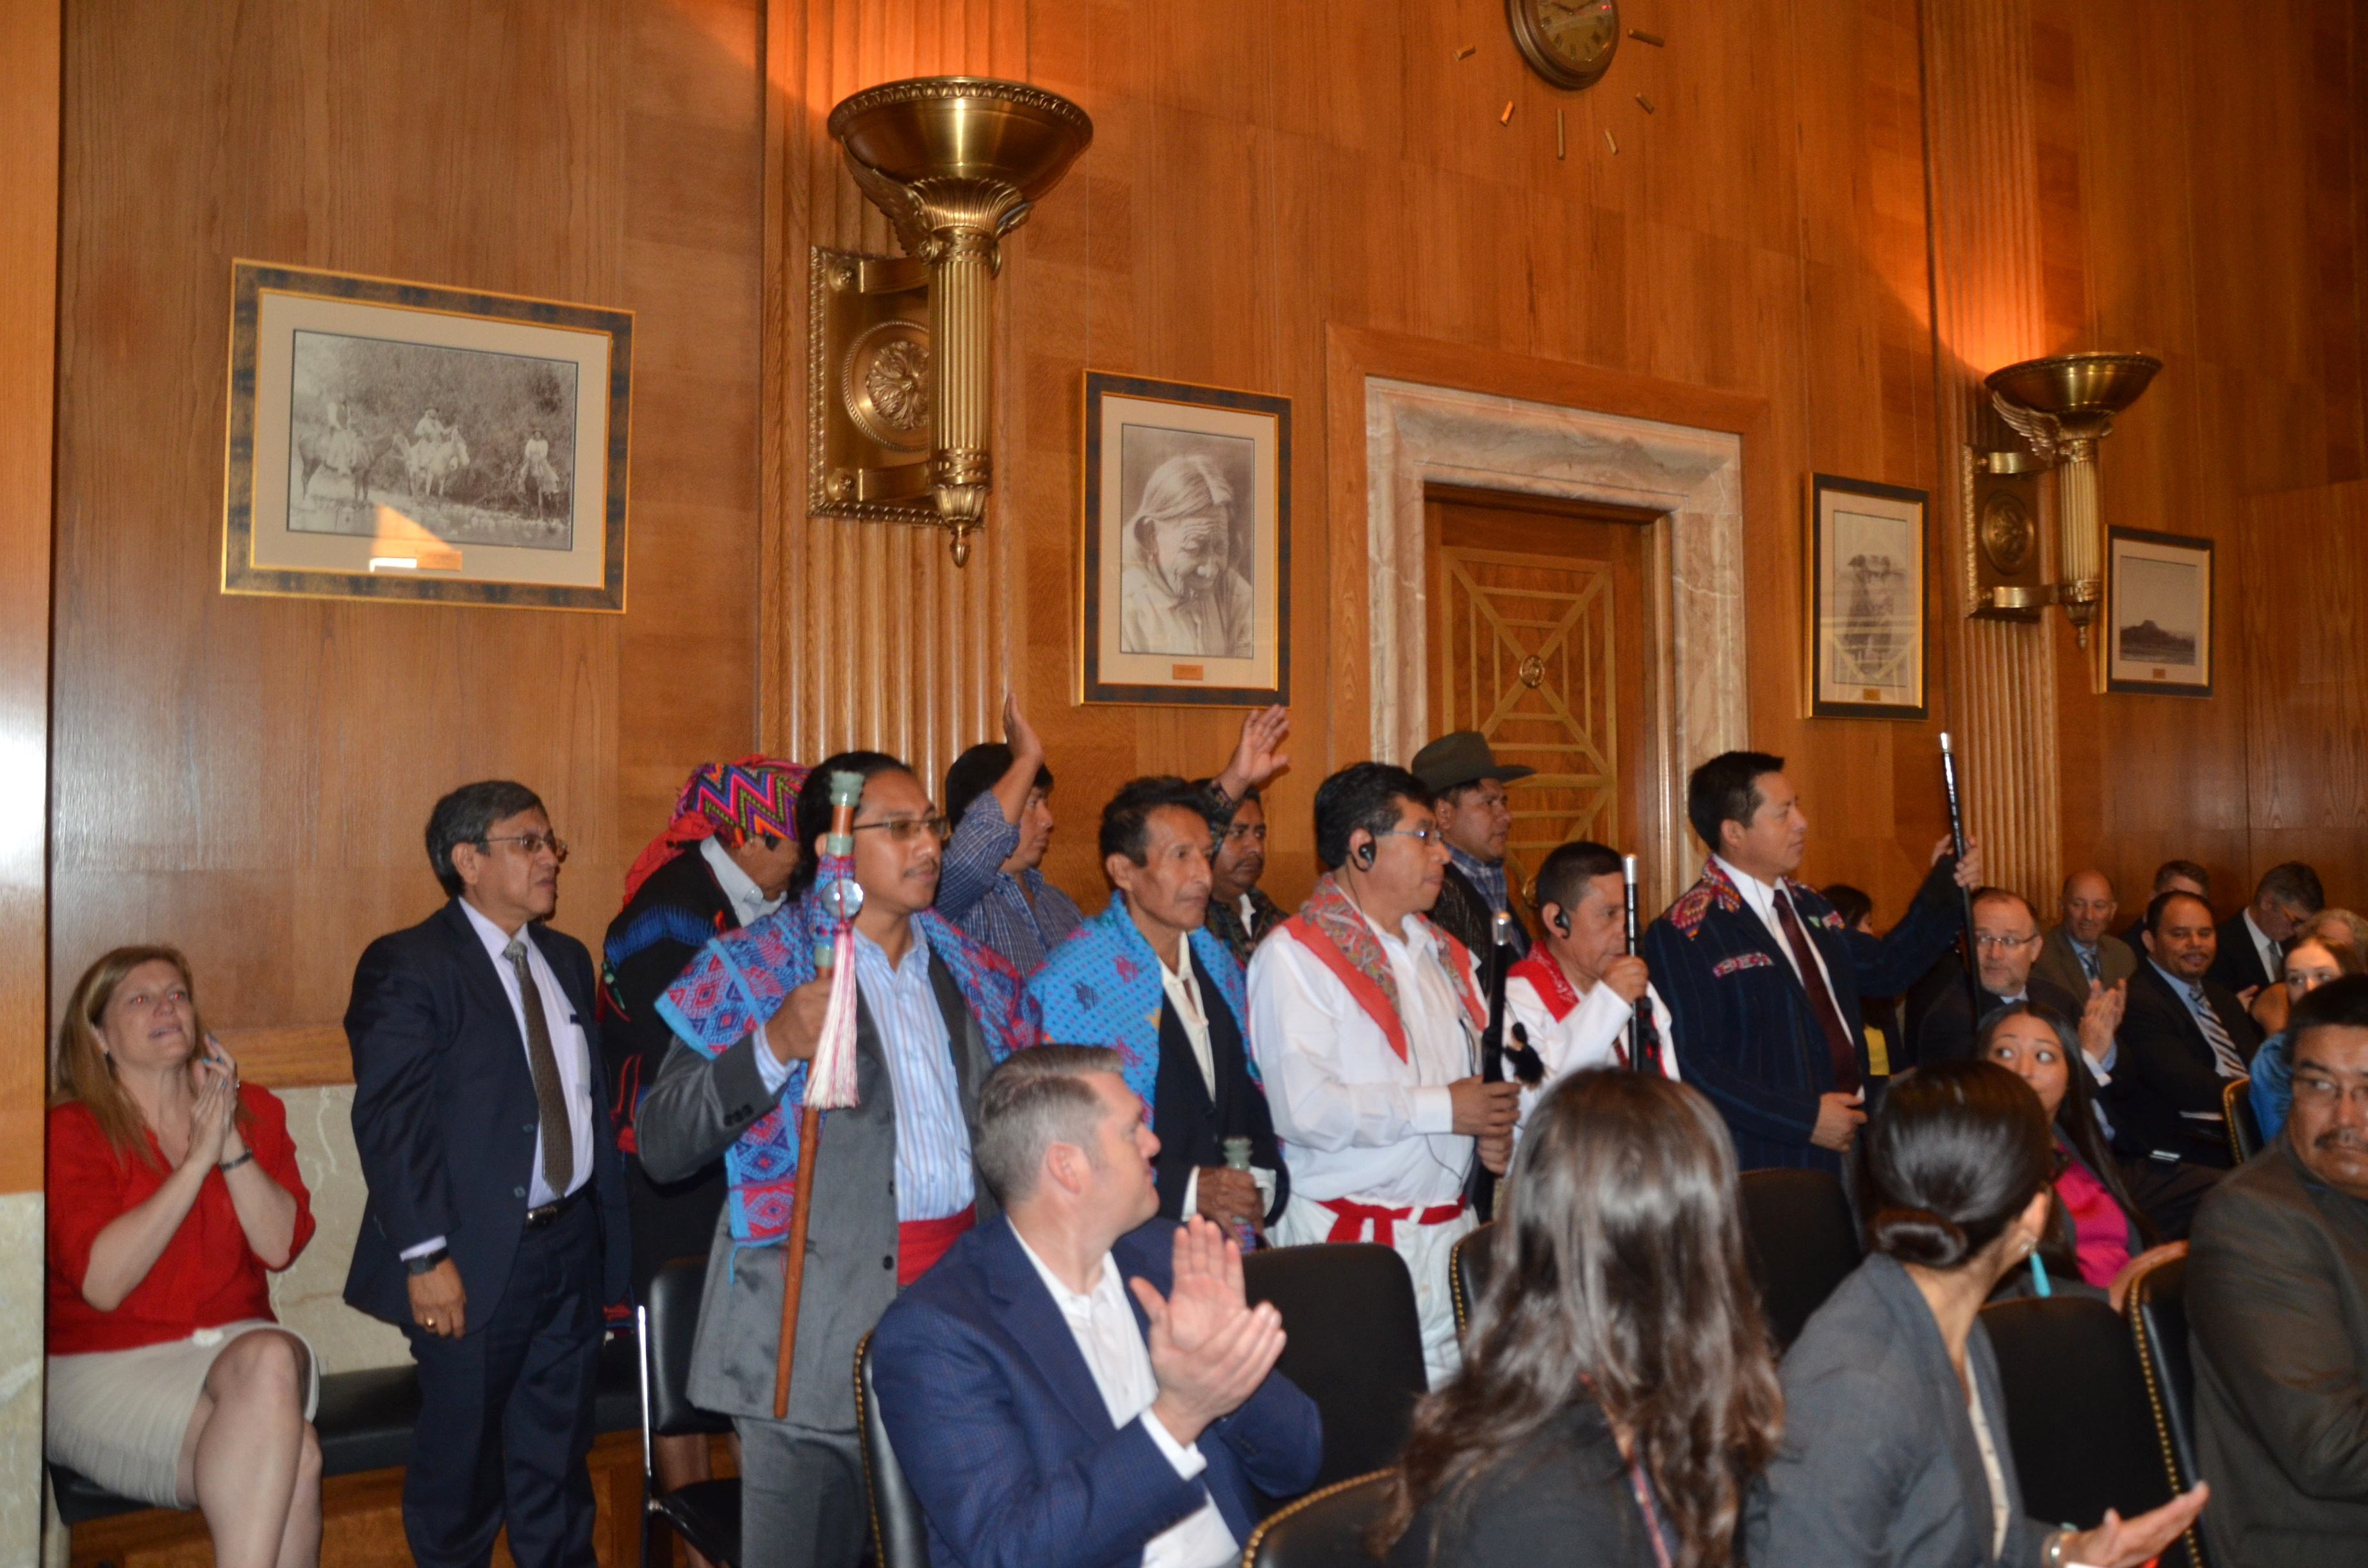 Guatemalan Mayan Tribes represented by the participants at the National Congress of American Indians Tribal Impact Day.